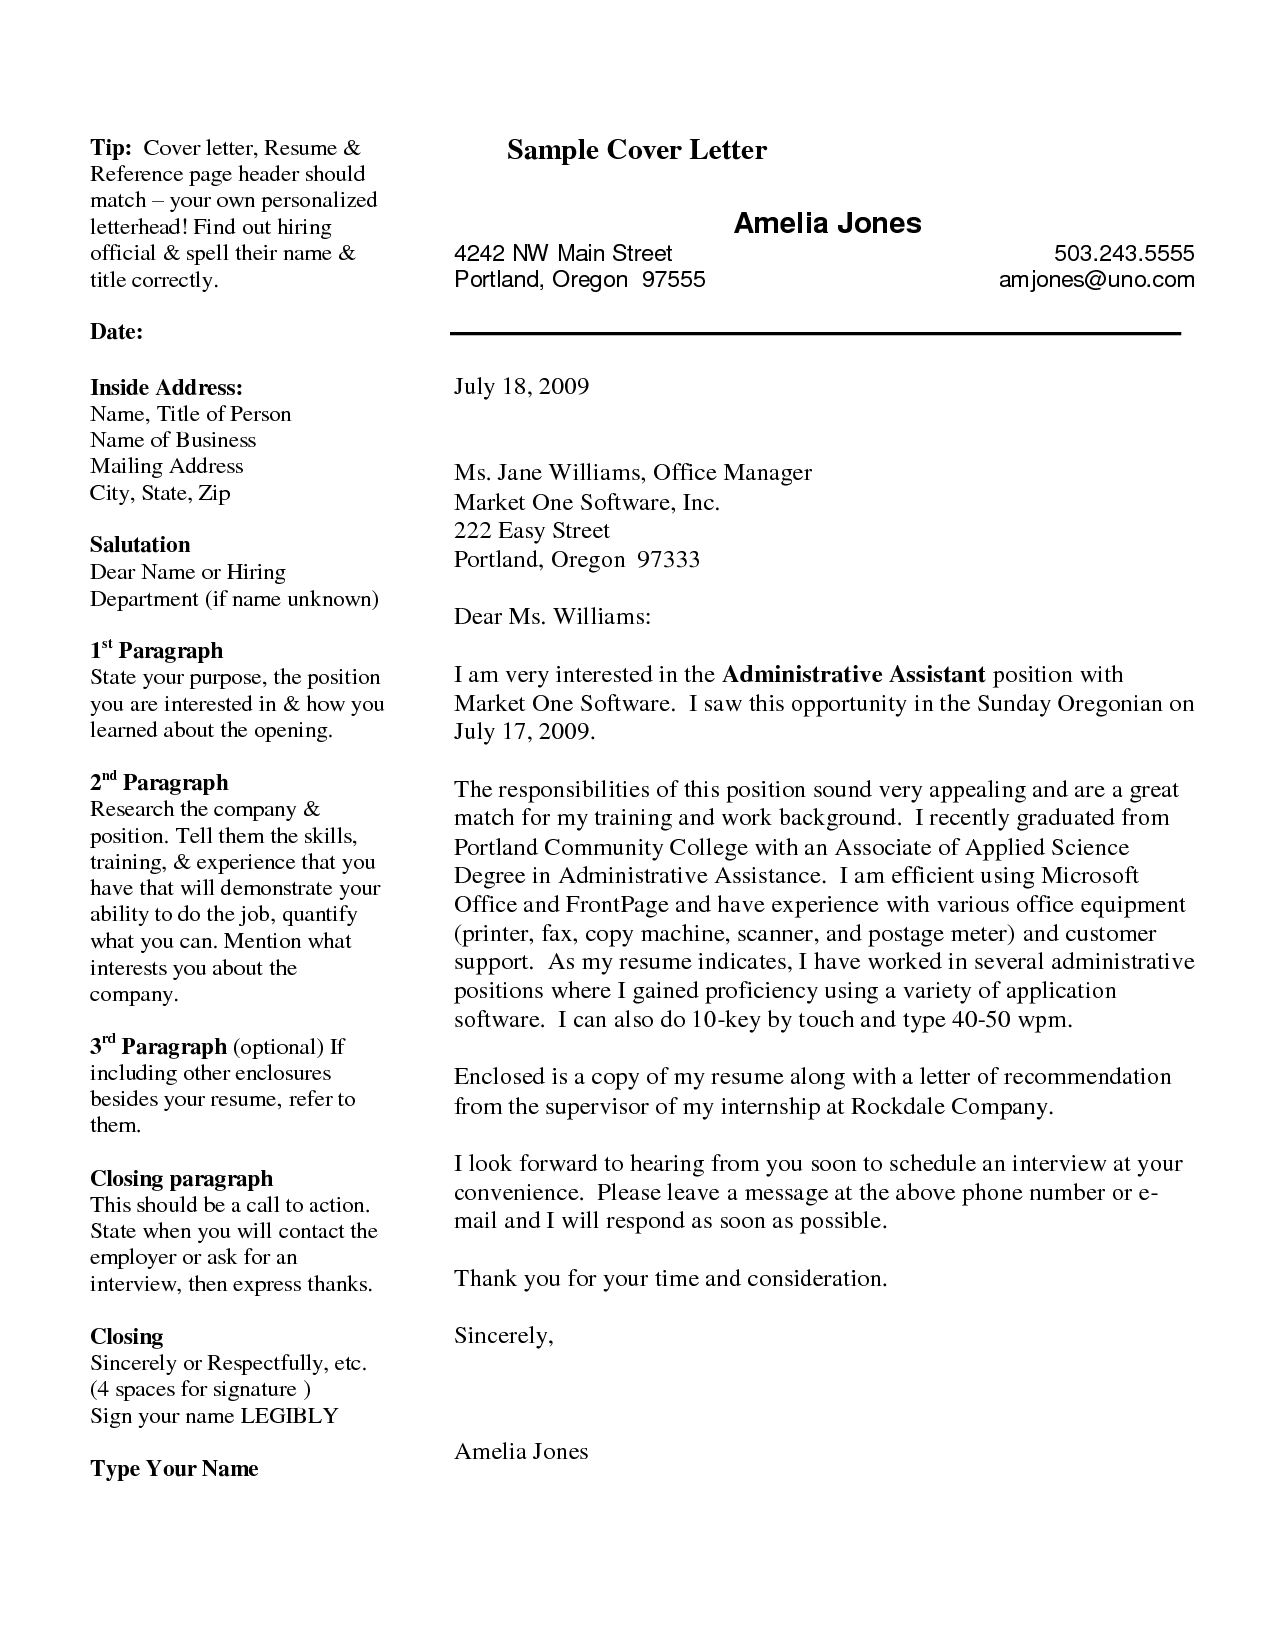 Professional Resume Cover Letter Professional Resume Cover Letter Samplesprofessional Resume Cover